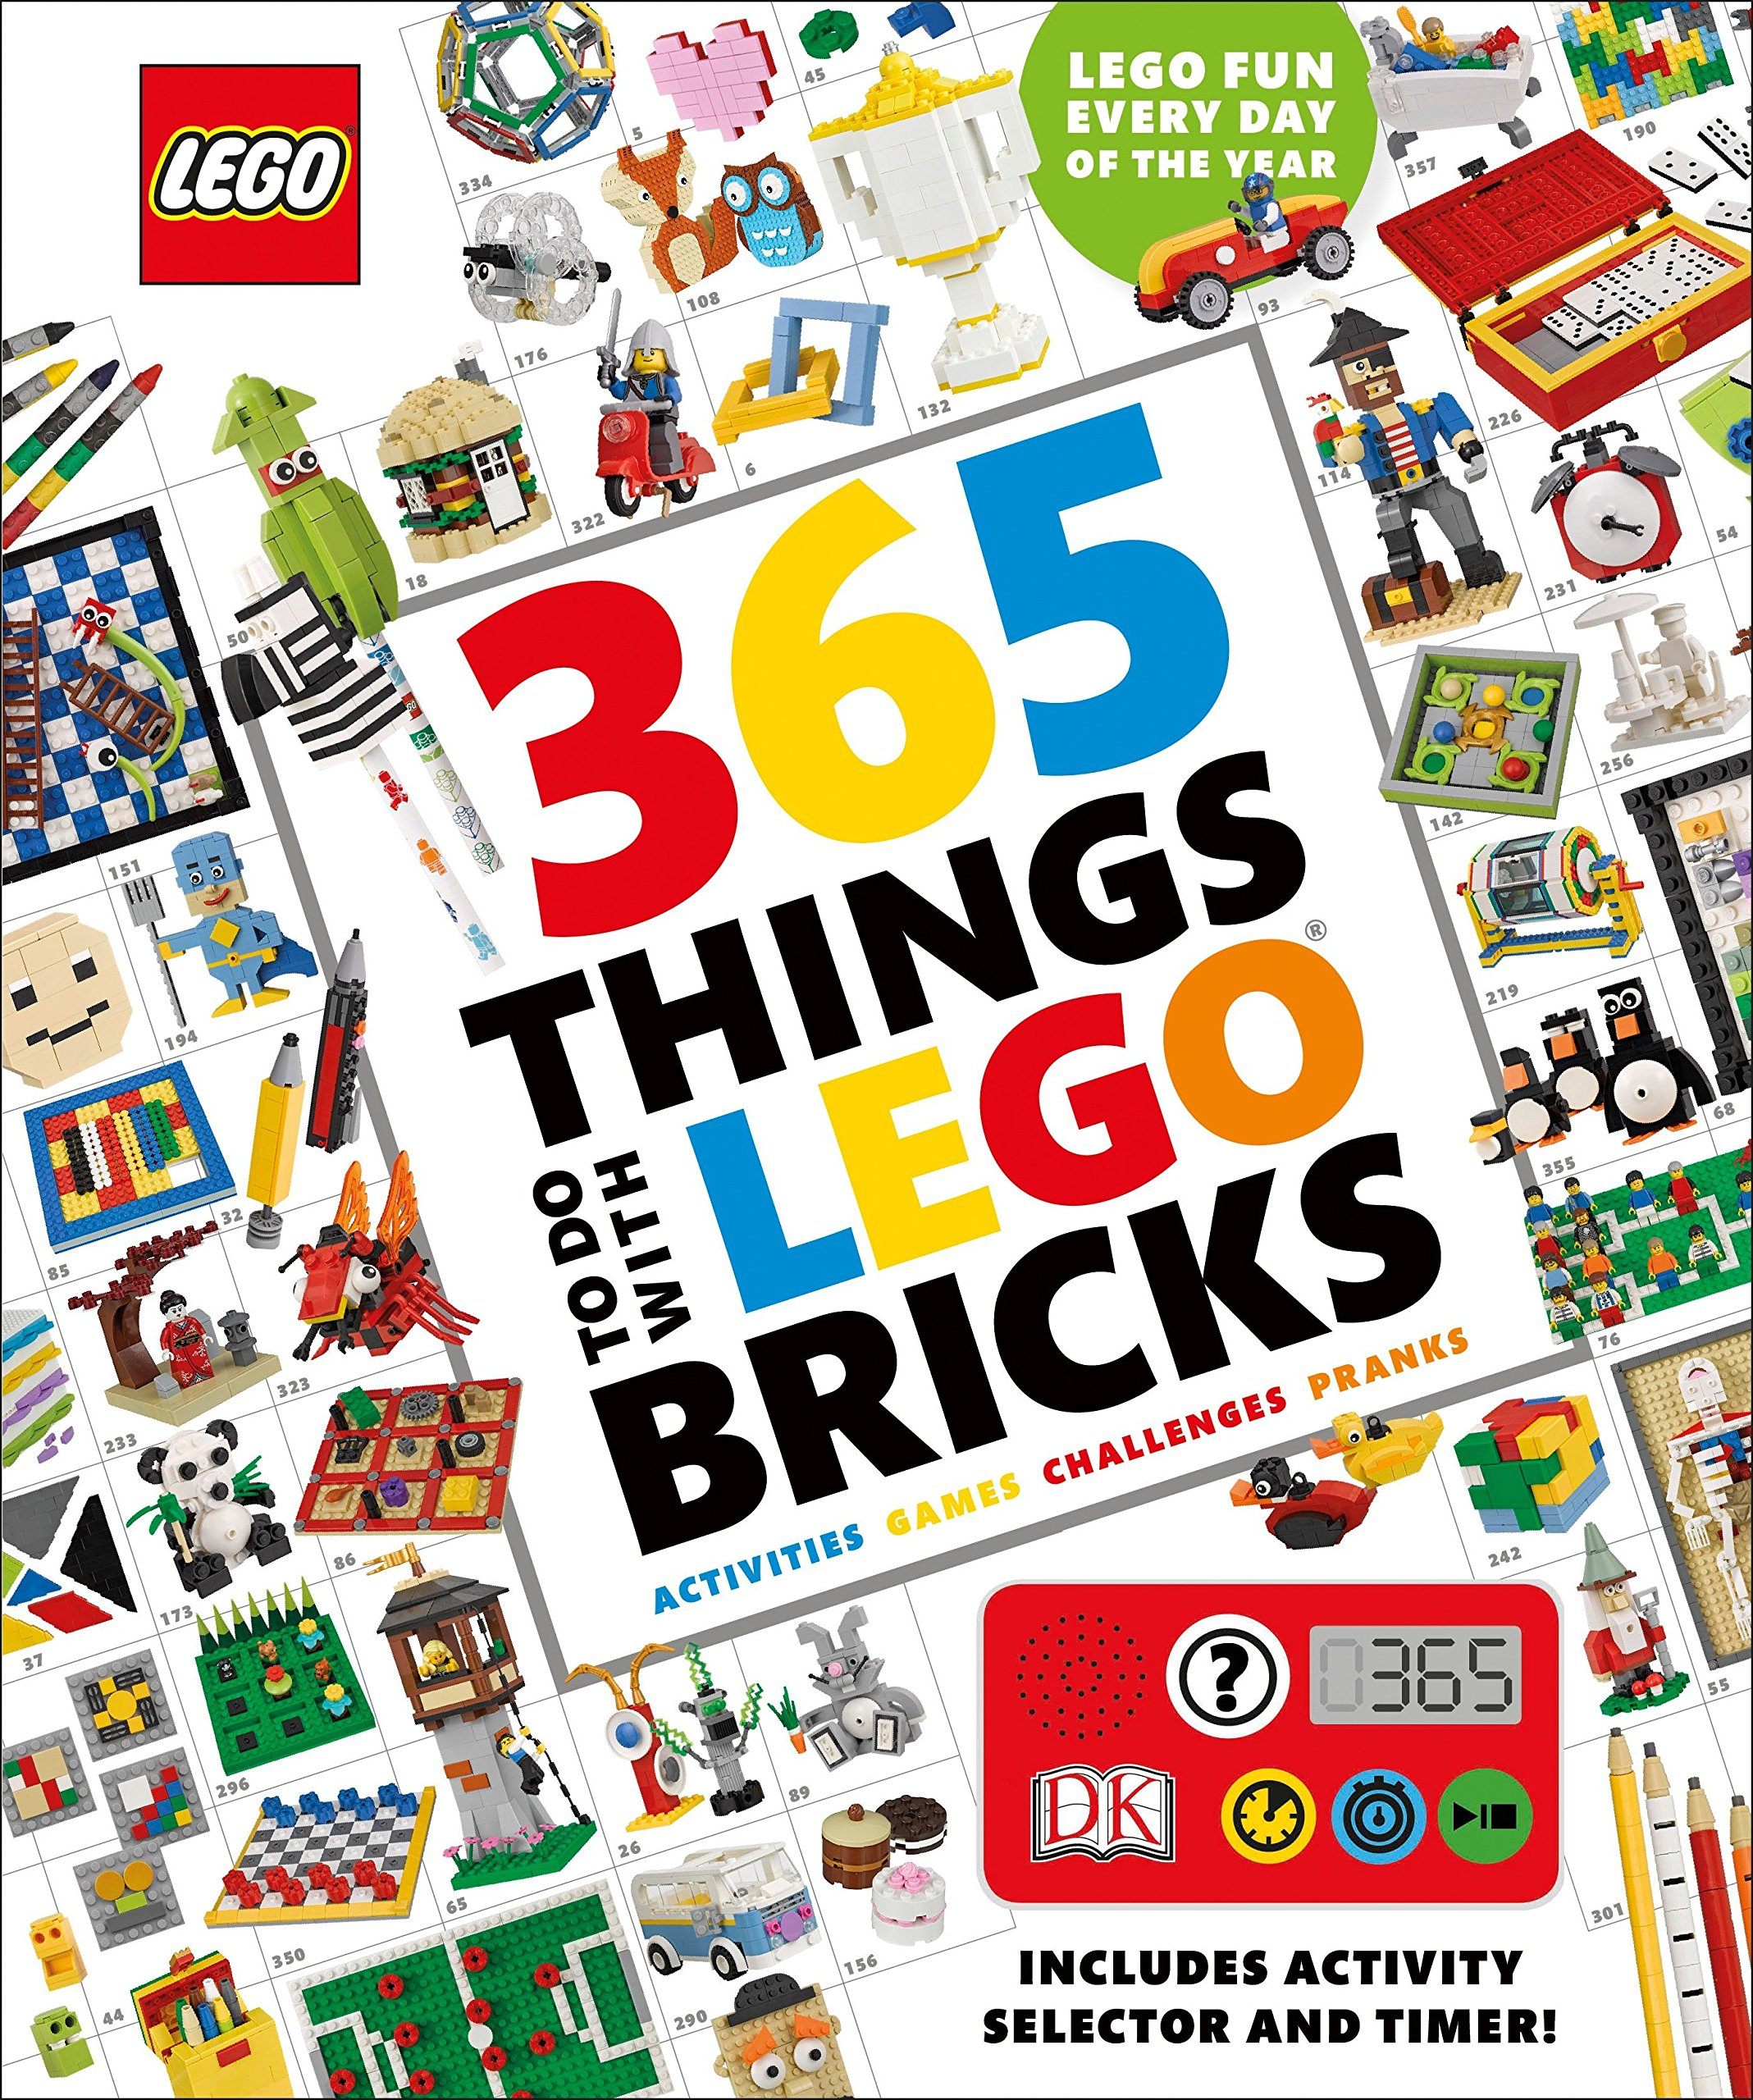 365 Things to Do with LEGO Bricks: Lego Fun Every Day of the Year by DK Publishing Dorling Kindersley (Image #7)